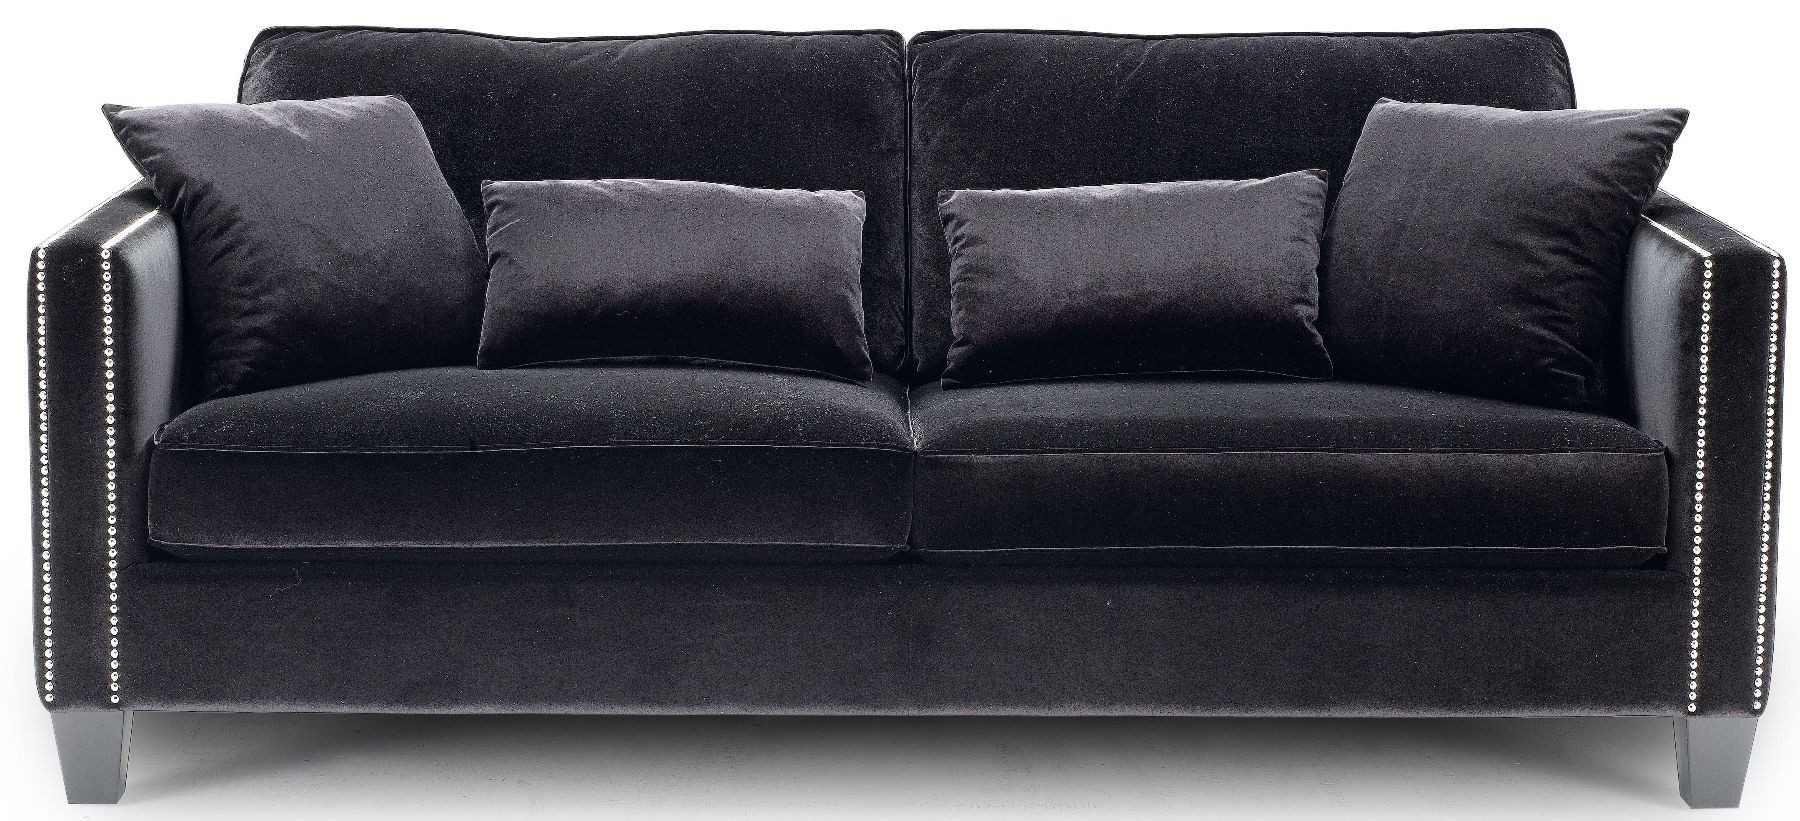 Cathedral Black Sofa 50332 3 Sunpan